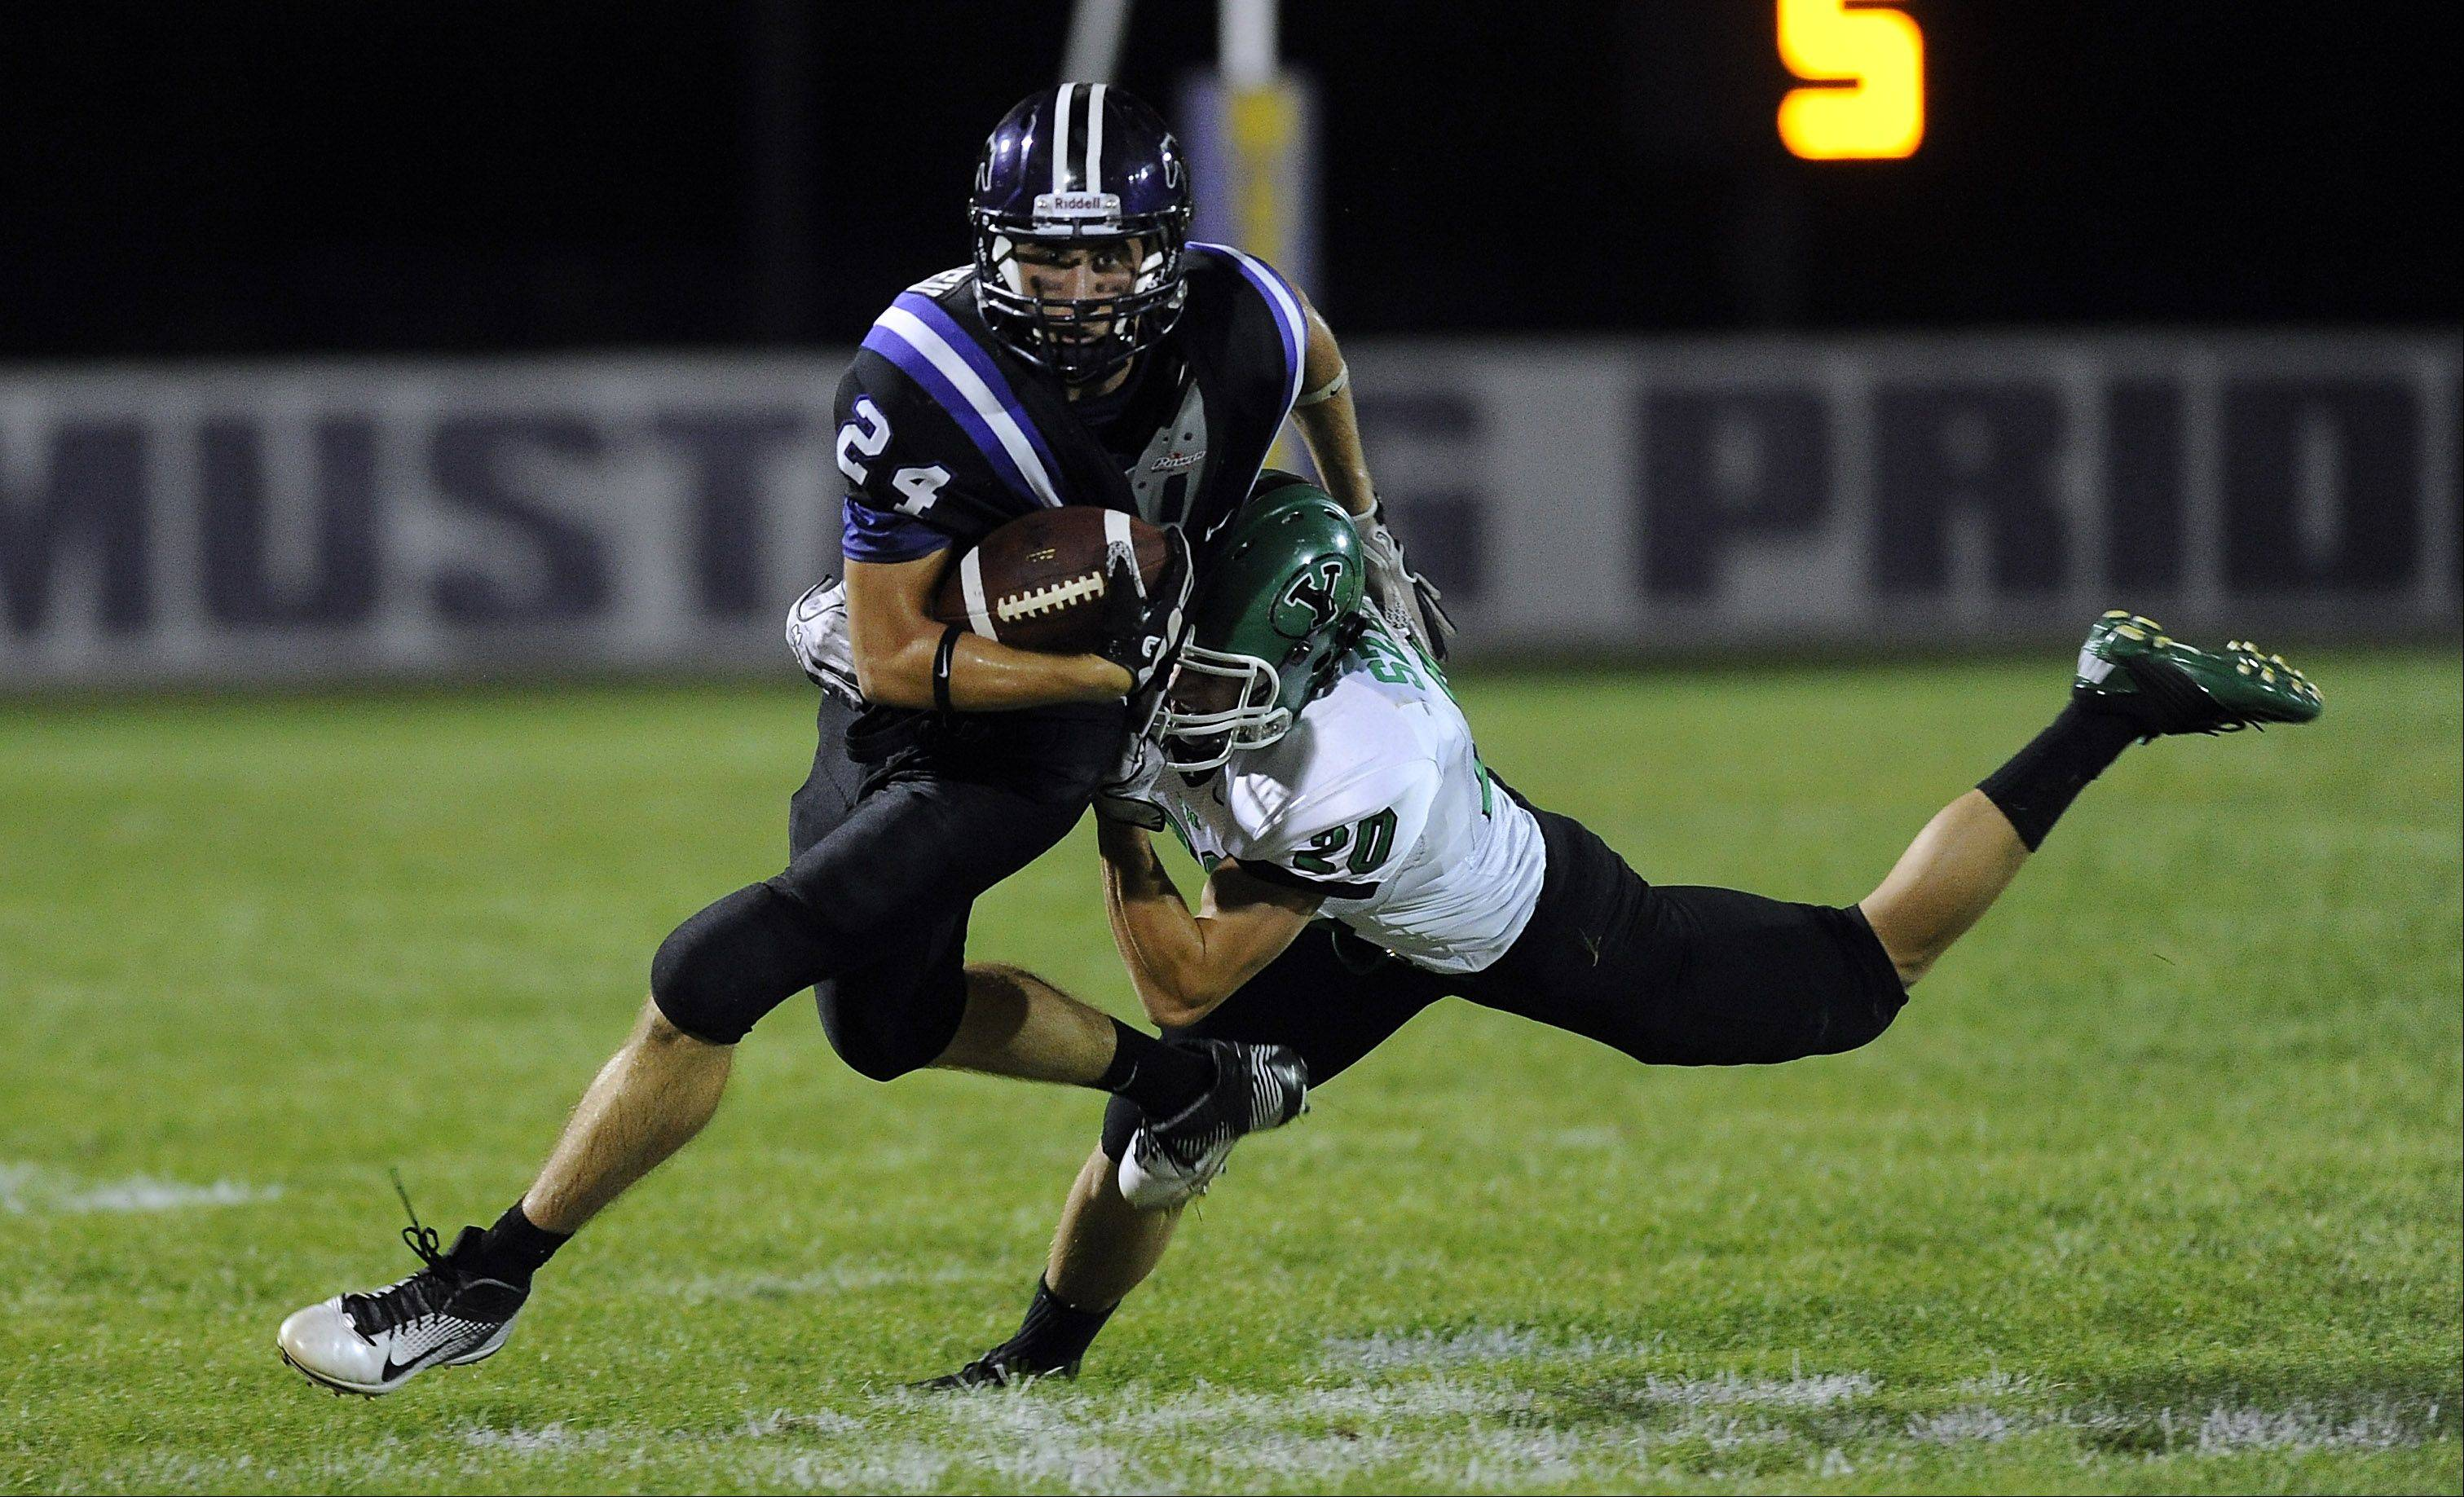 Rolling Meadows Ryan Gundersen is tackled by York's Kevin Szeluga in the second quarter of play in opening night of Friday night football in the northwest suburbs.